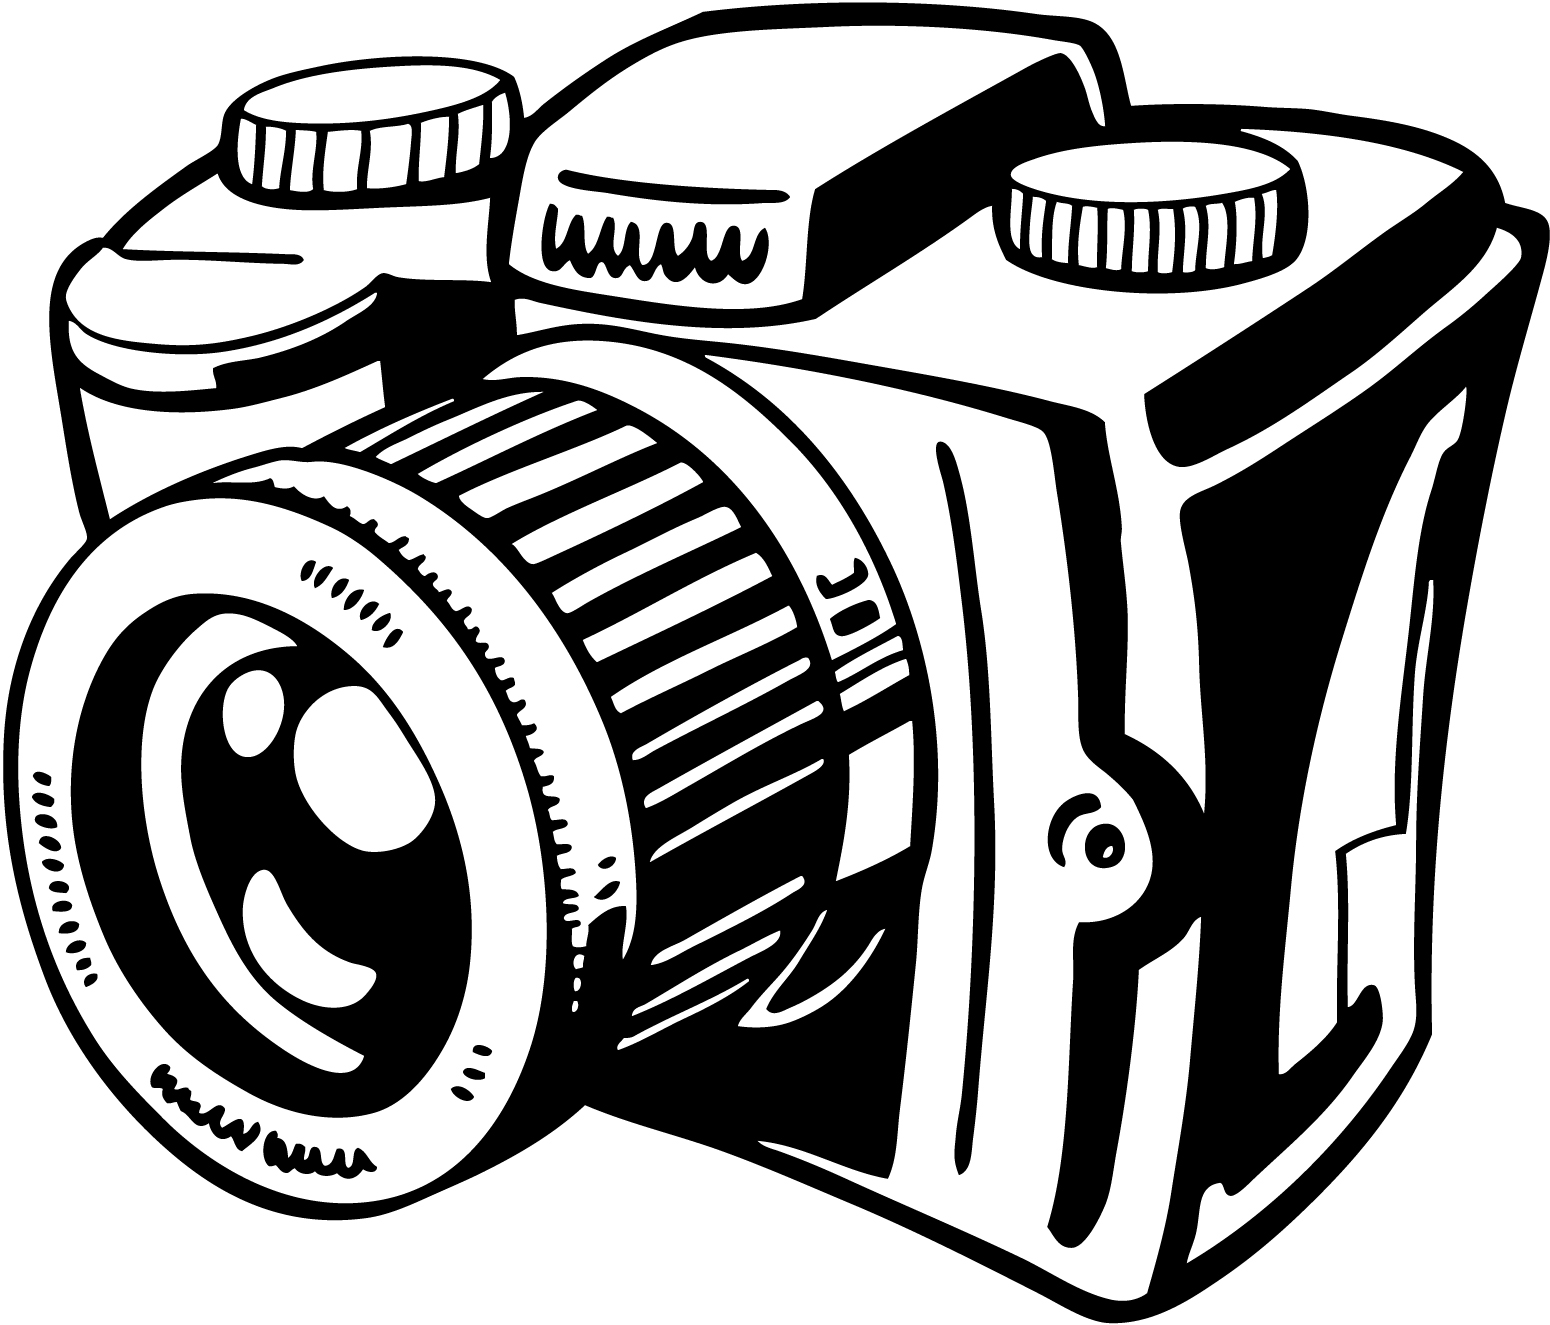 Camera clip art vector clip c - Camera Clip Art